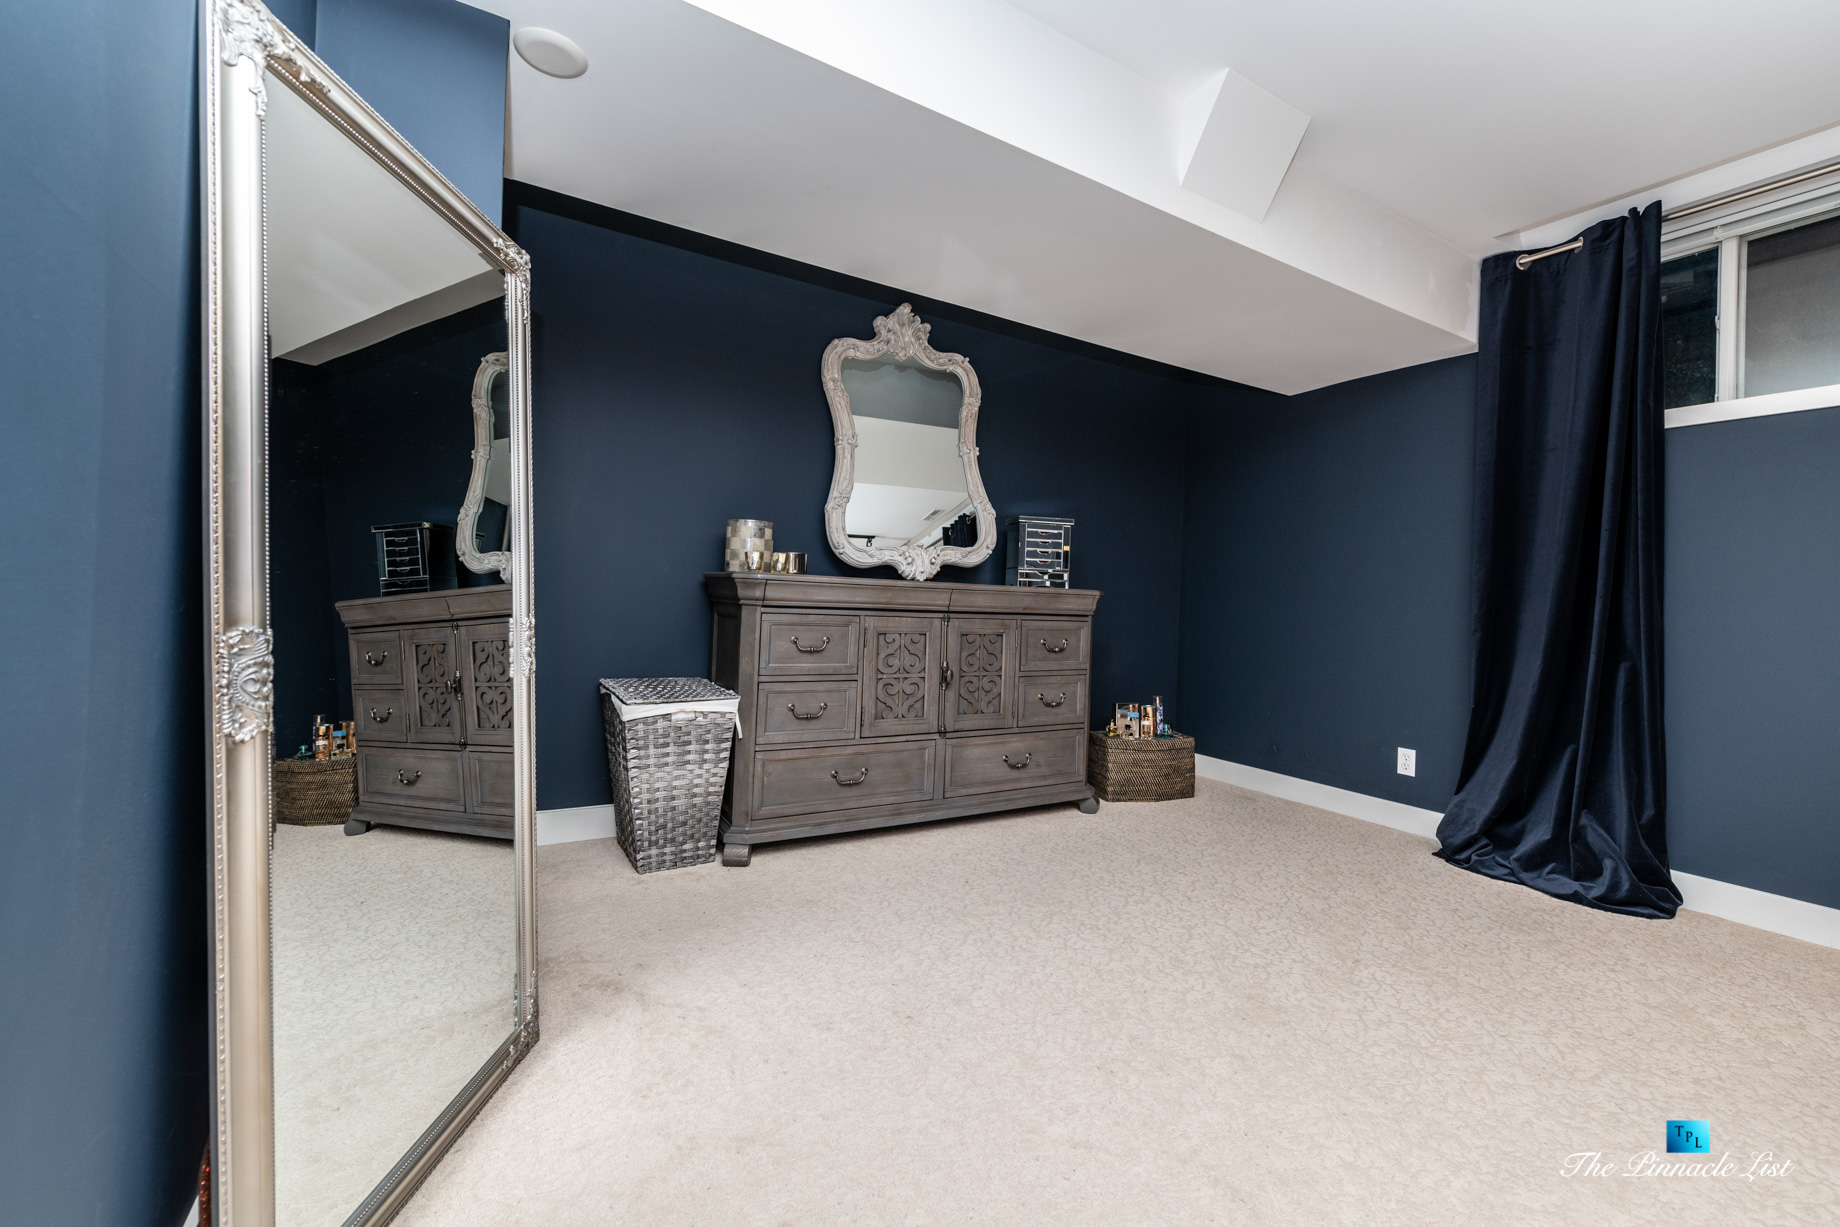 2366 Sunnyside Rd, Anmore, BC, Canada – Basment Bedroom Mirror